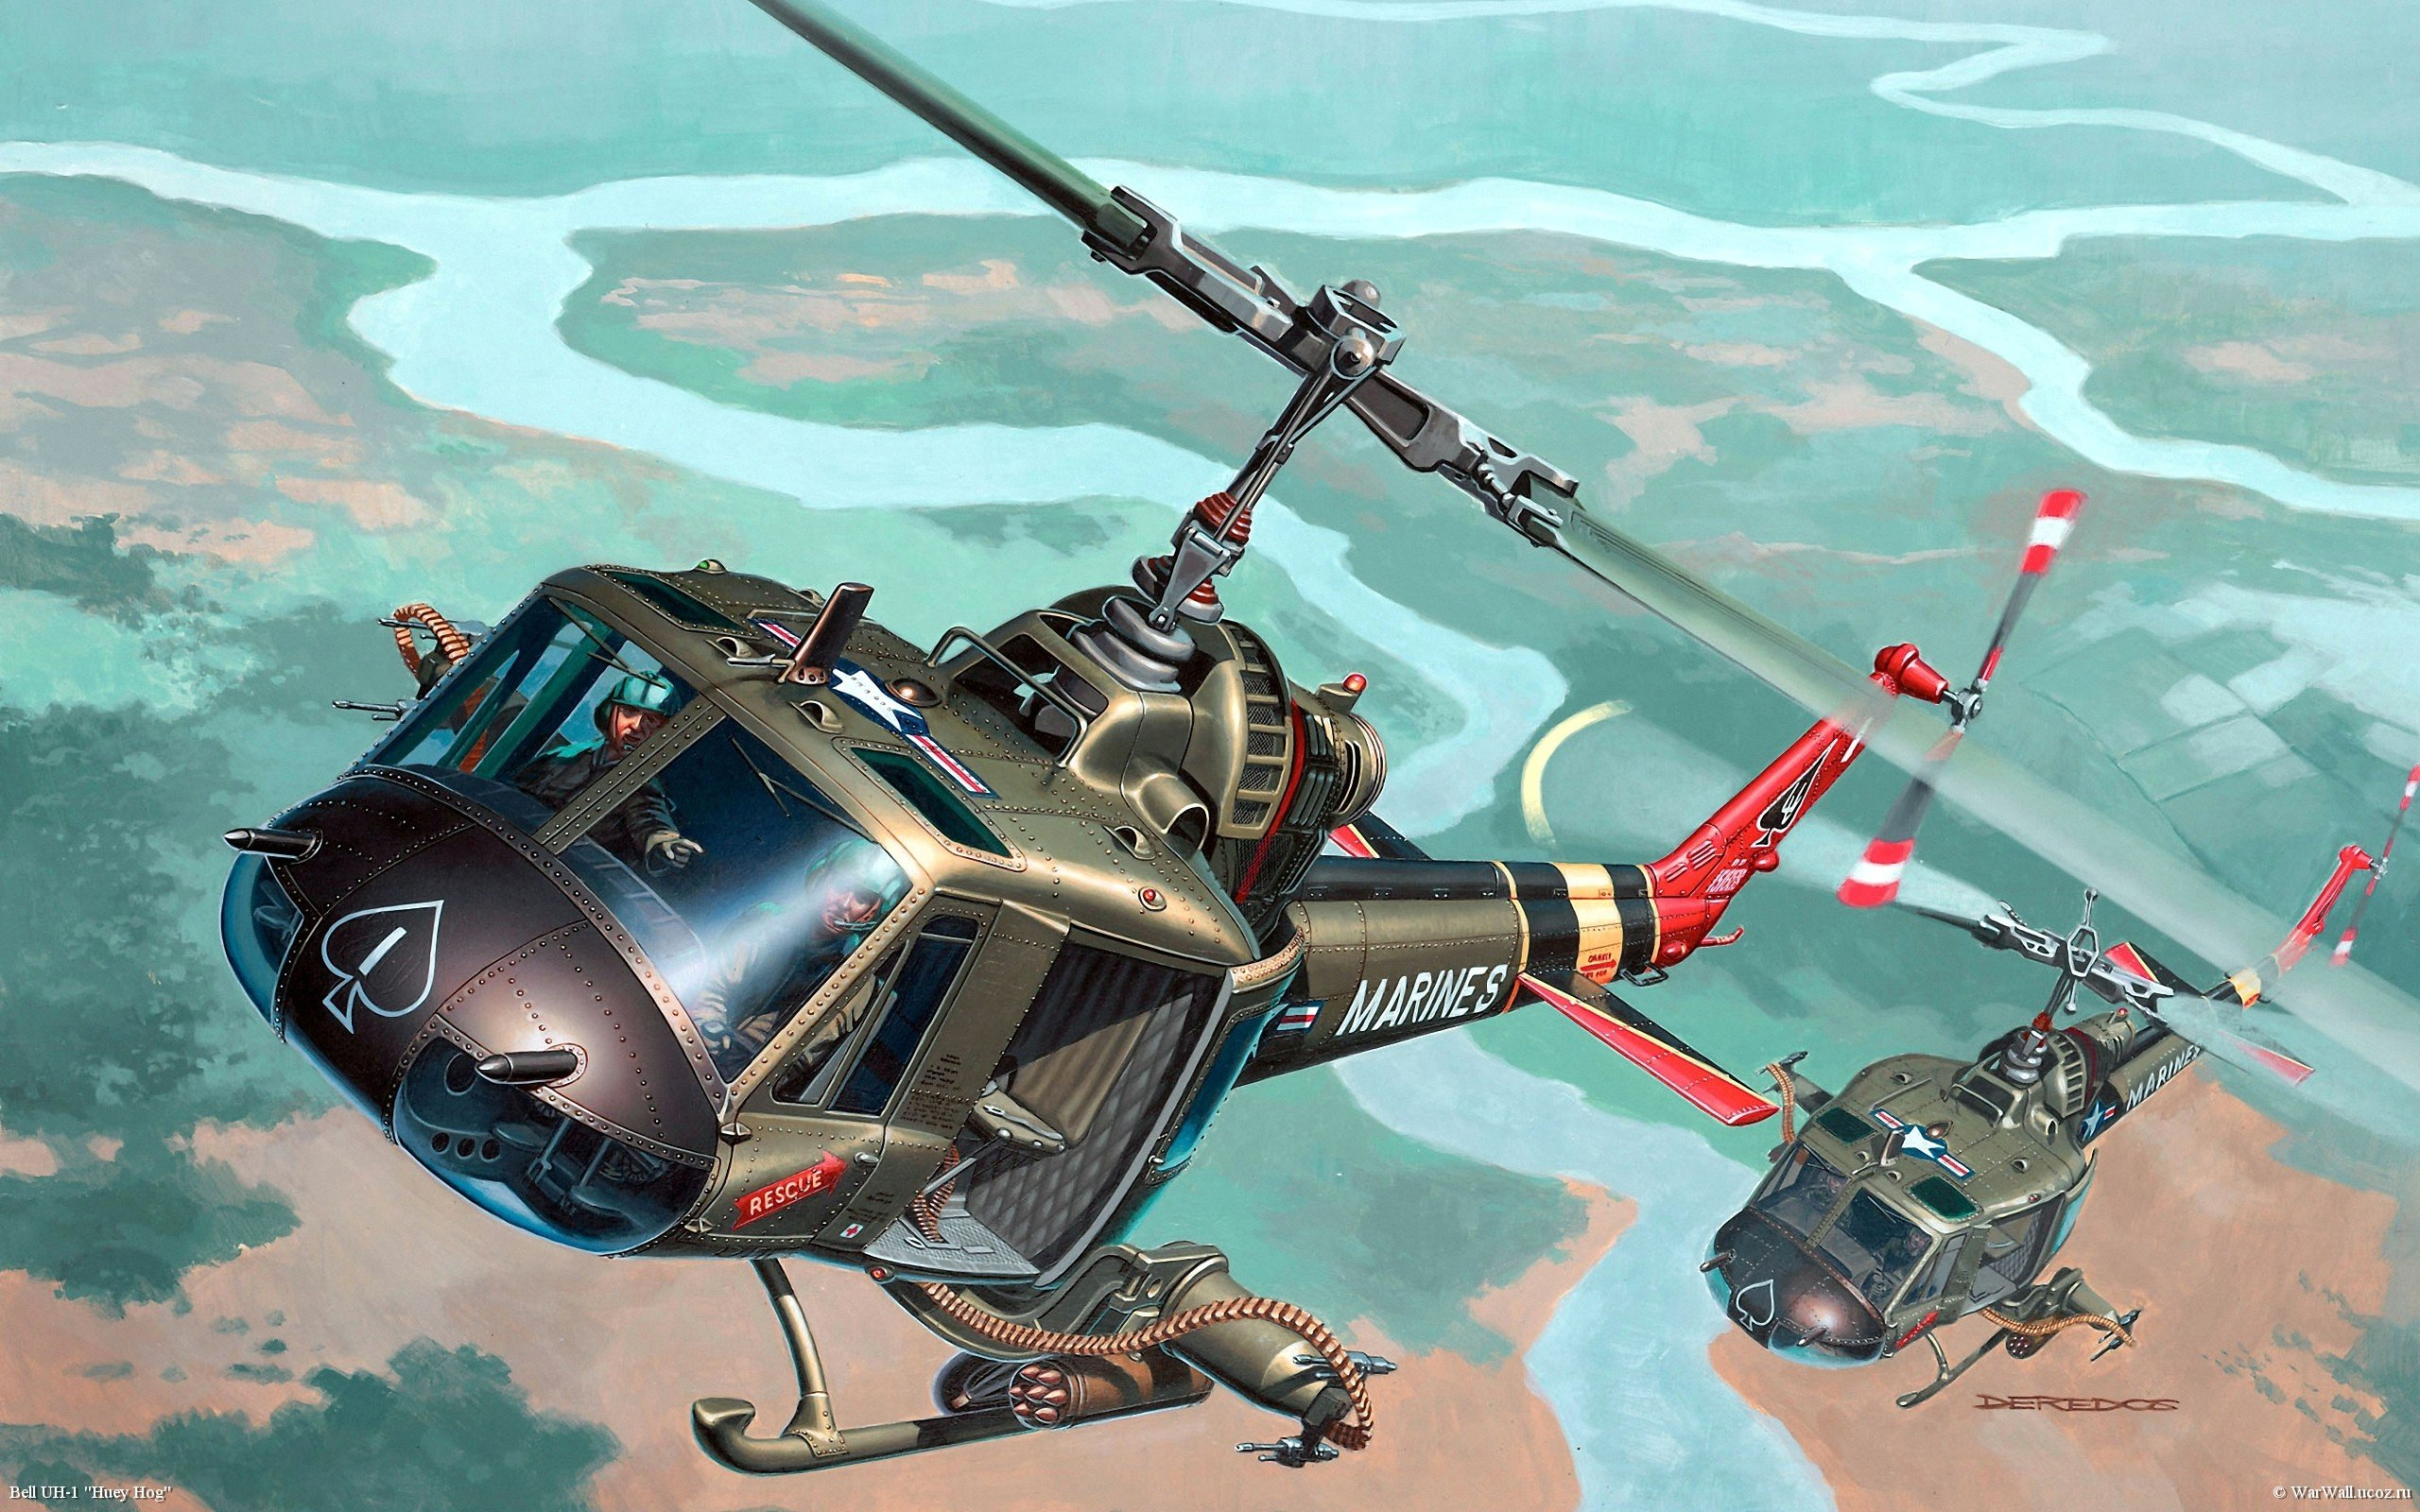 aircraft military helicopters artwork vehicles rivers military art